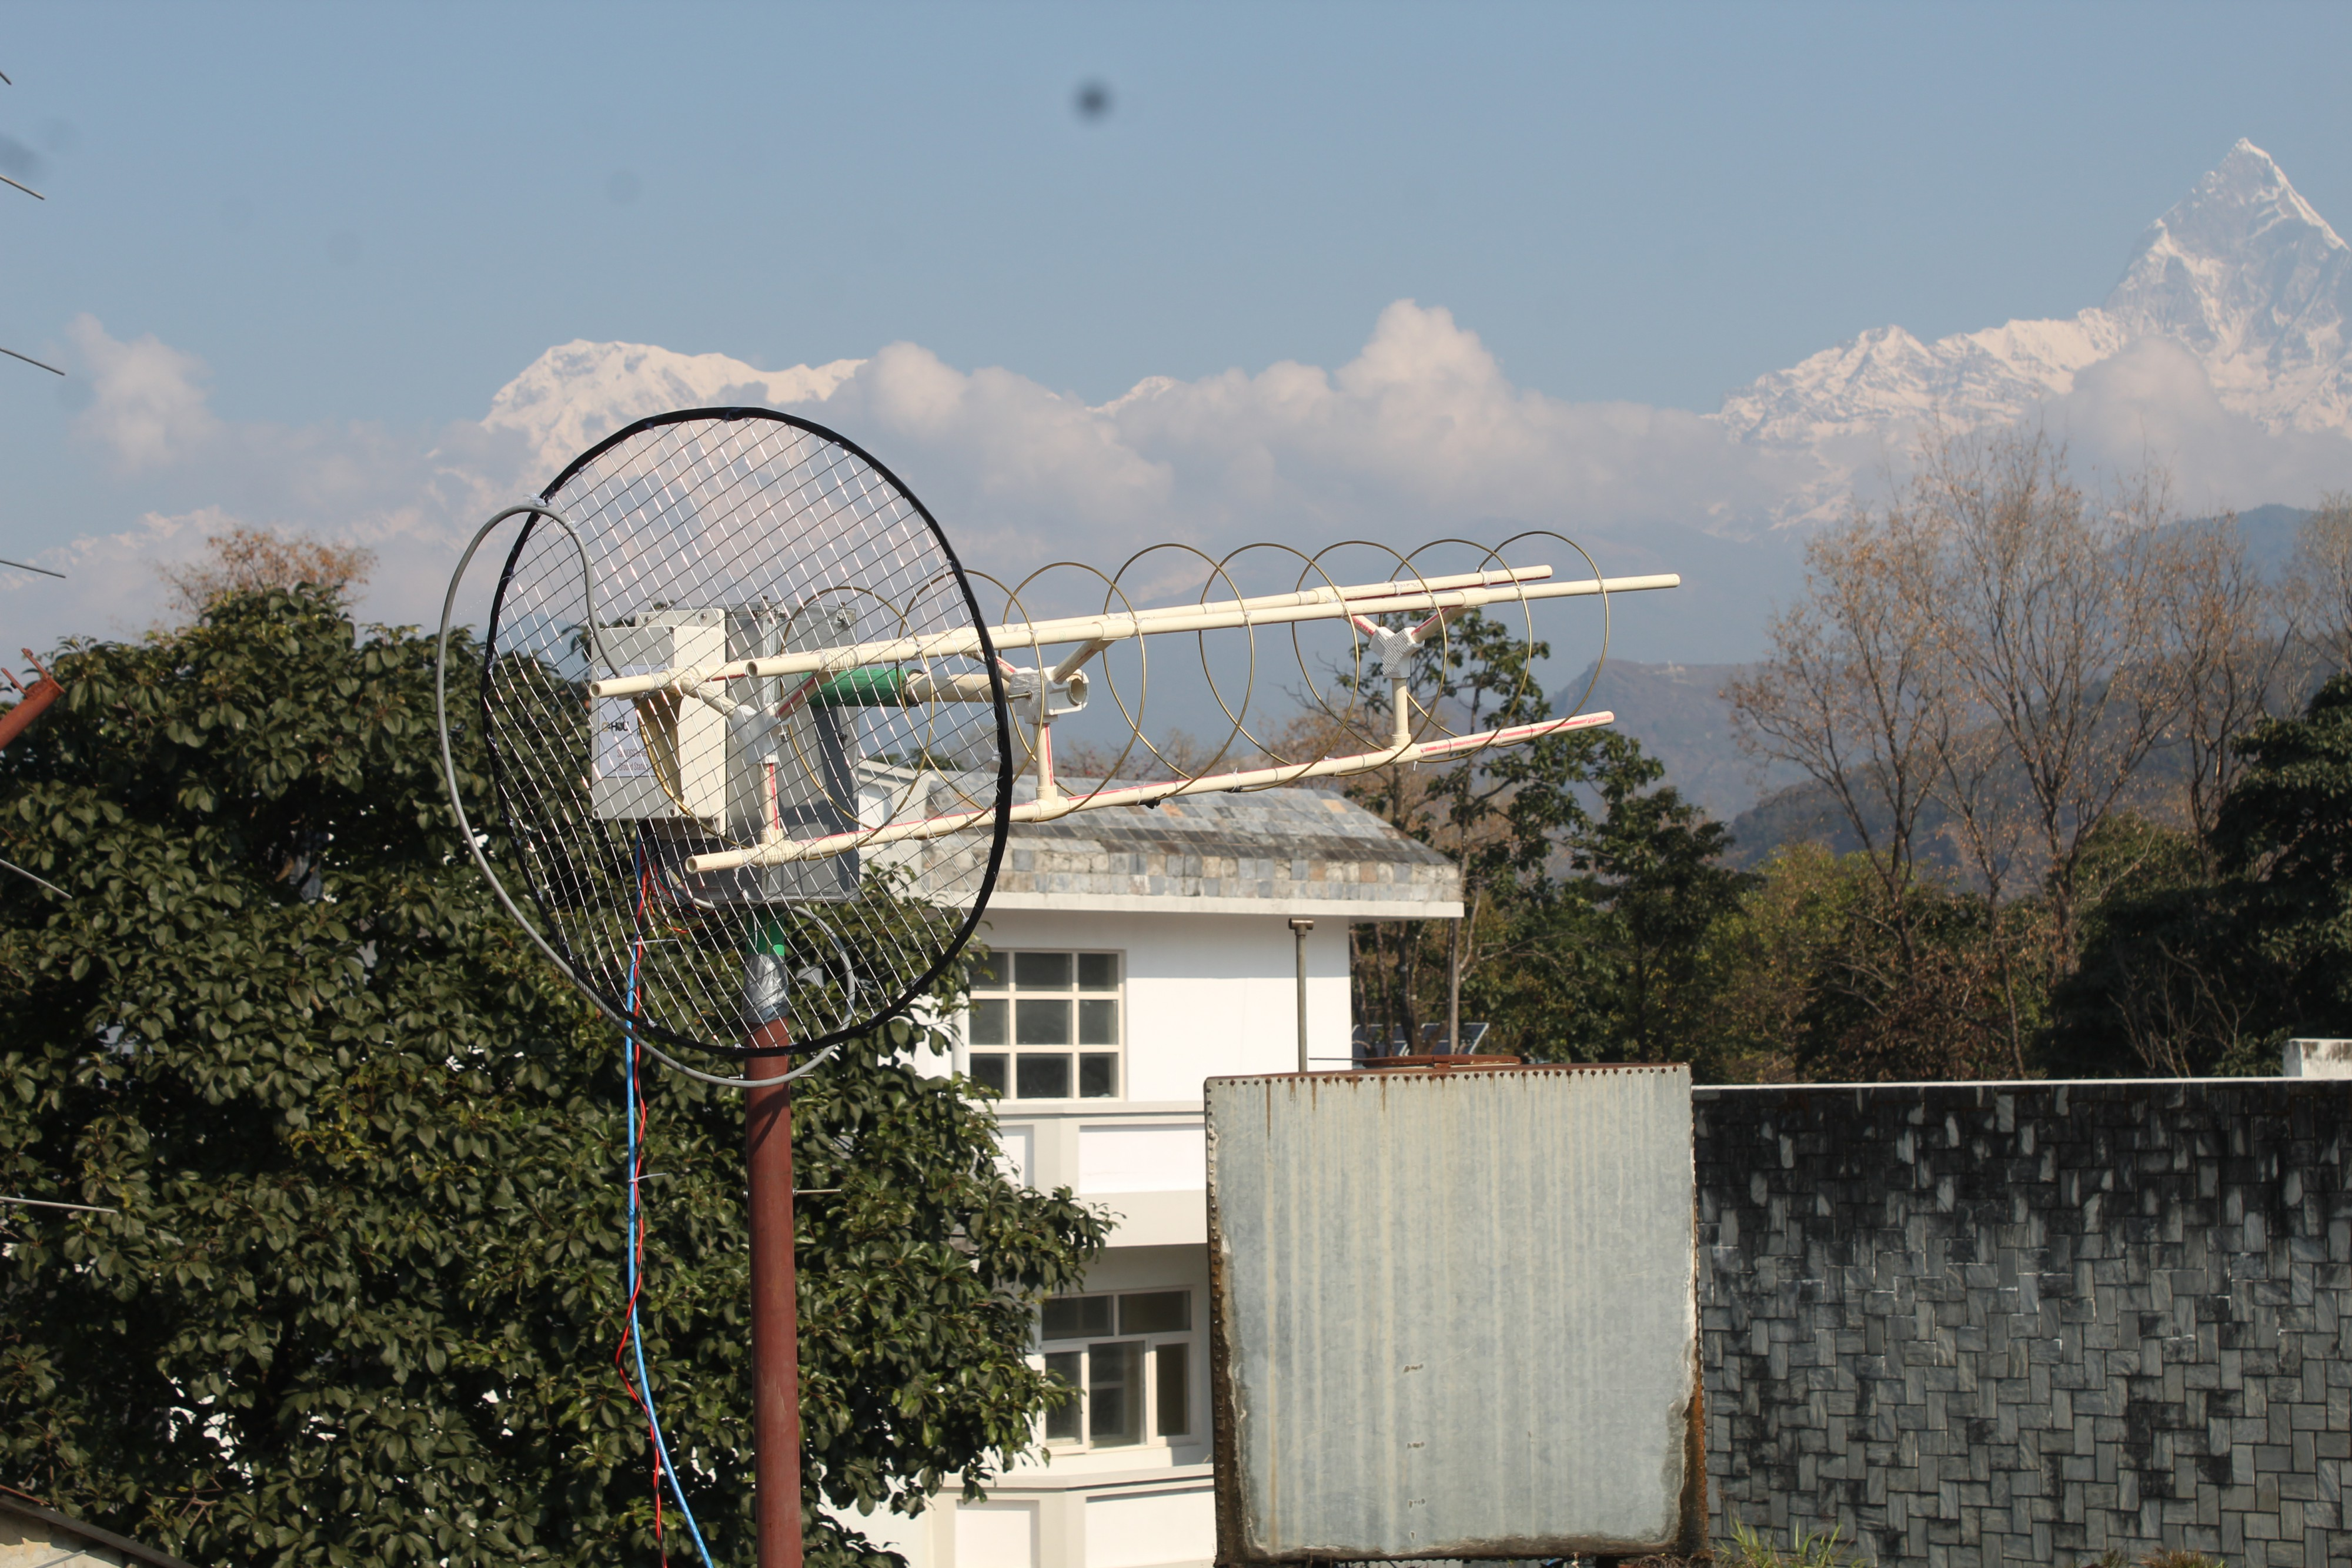 PN Campus Ground Station, Pokhara-ORION Space